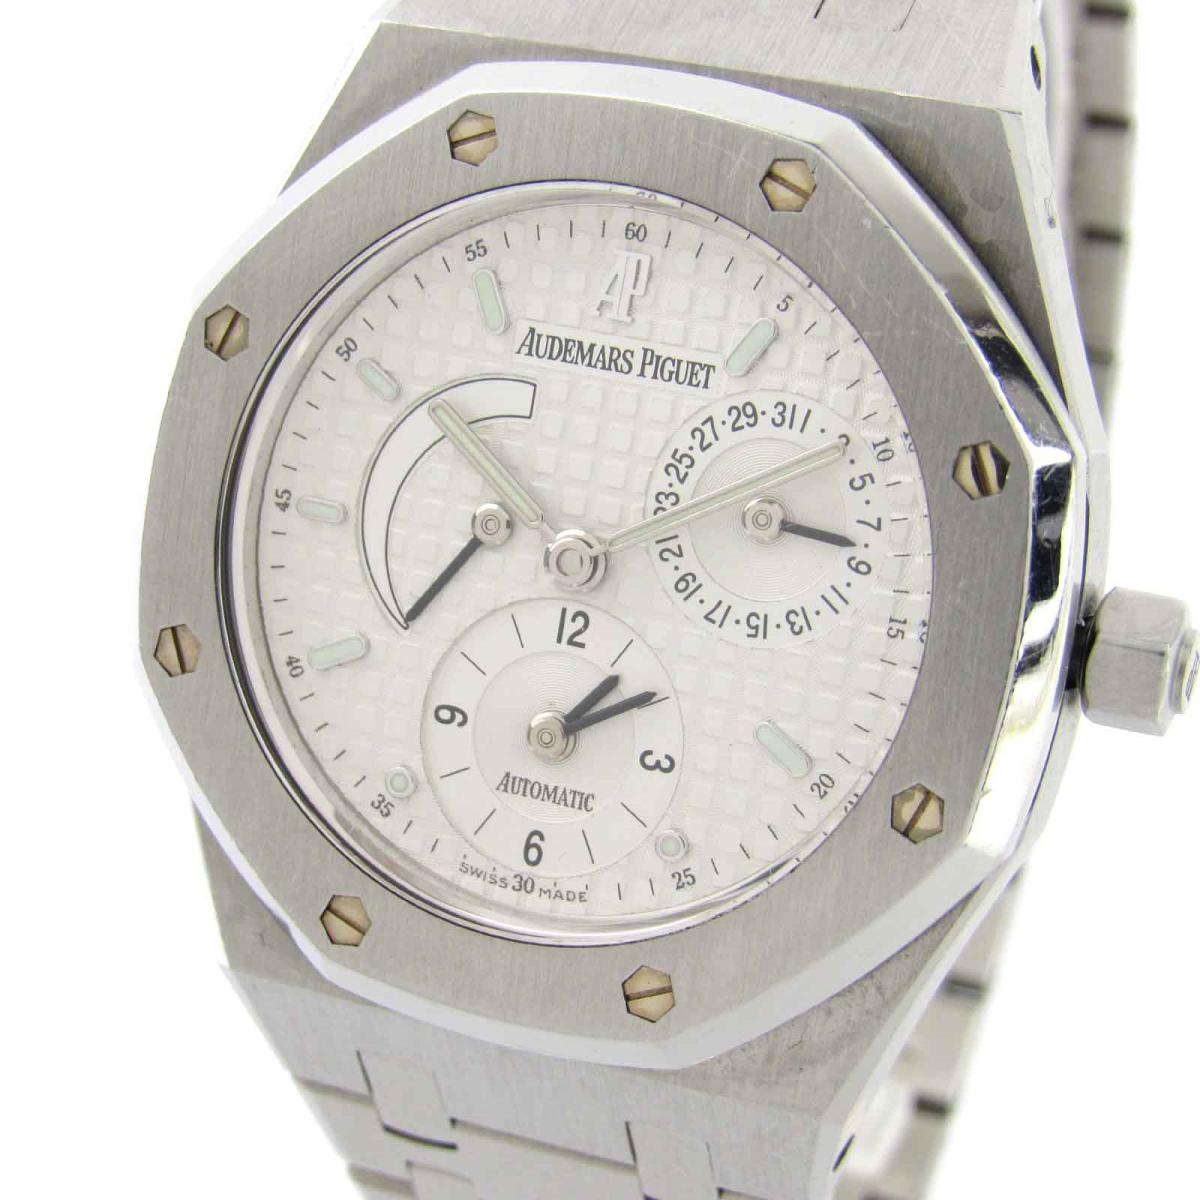 7f75d5c9c723 (Free shipping) Auth AUDEMARS PIGUET Royal Oak dual time watch 25730 ST.0  Automatic (SS) Used